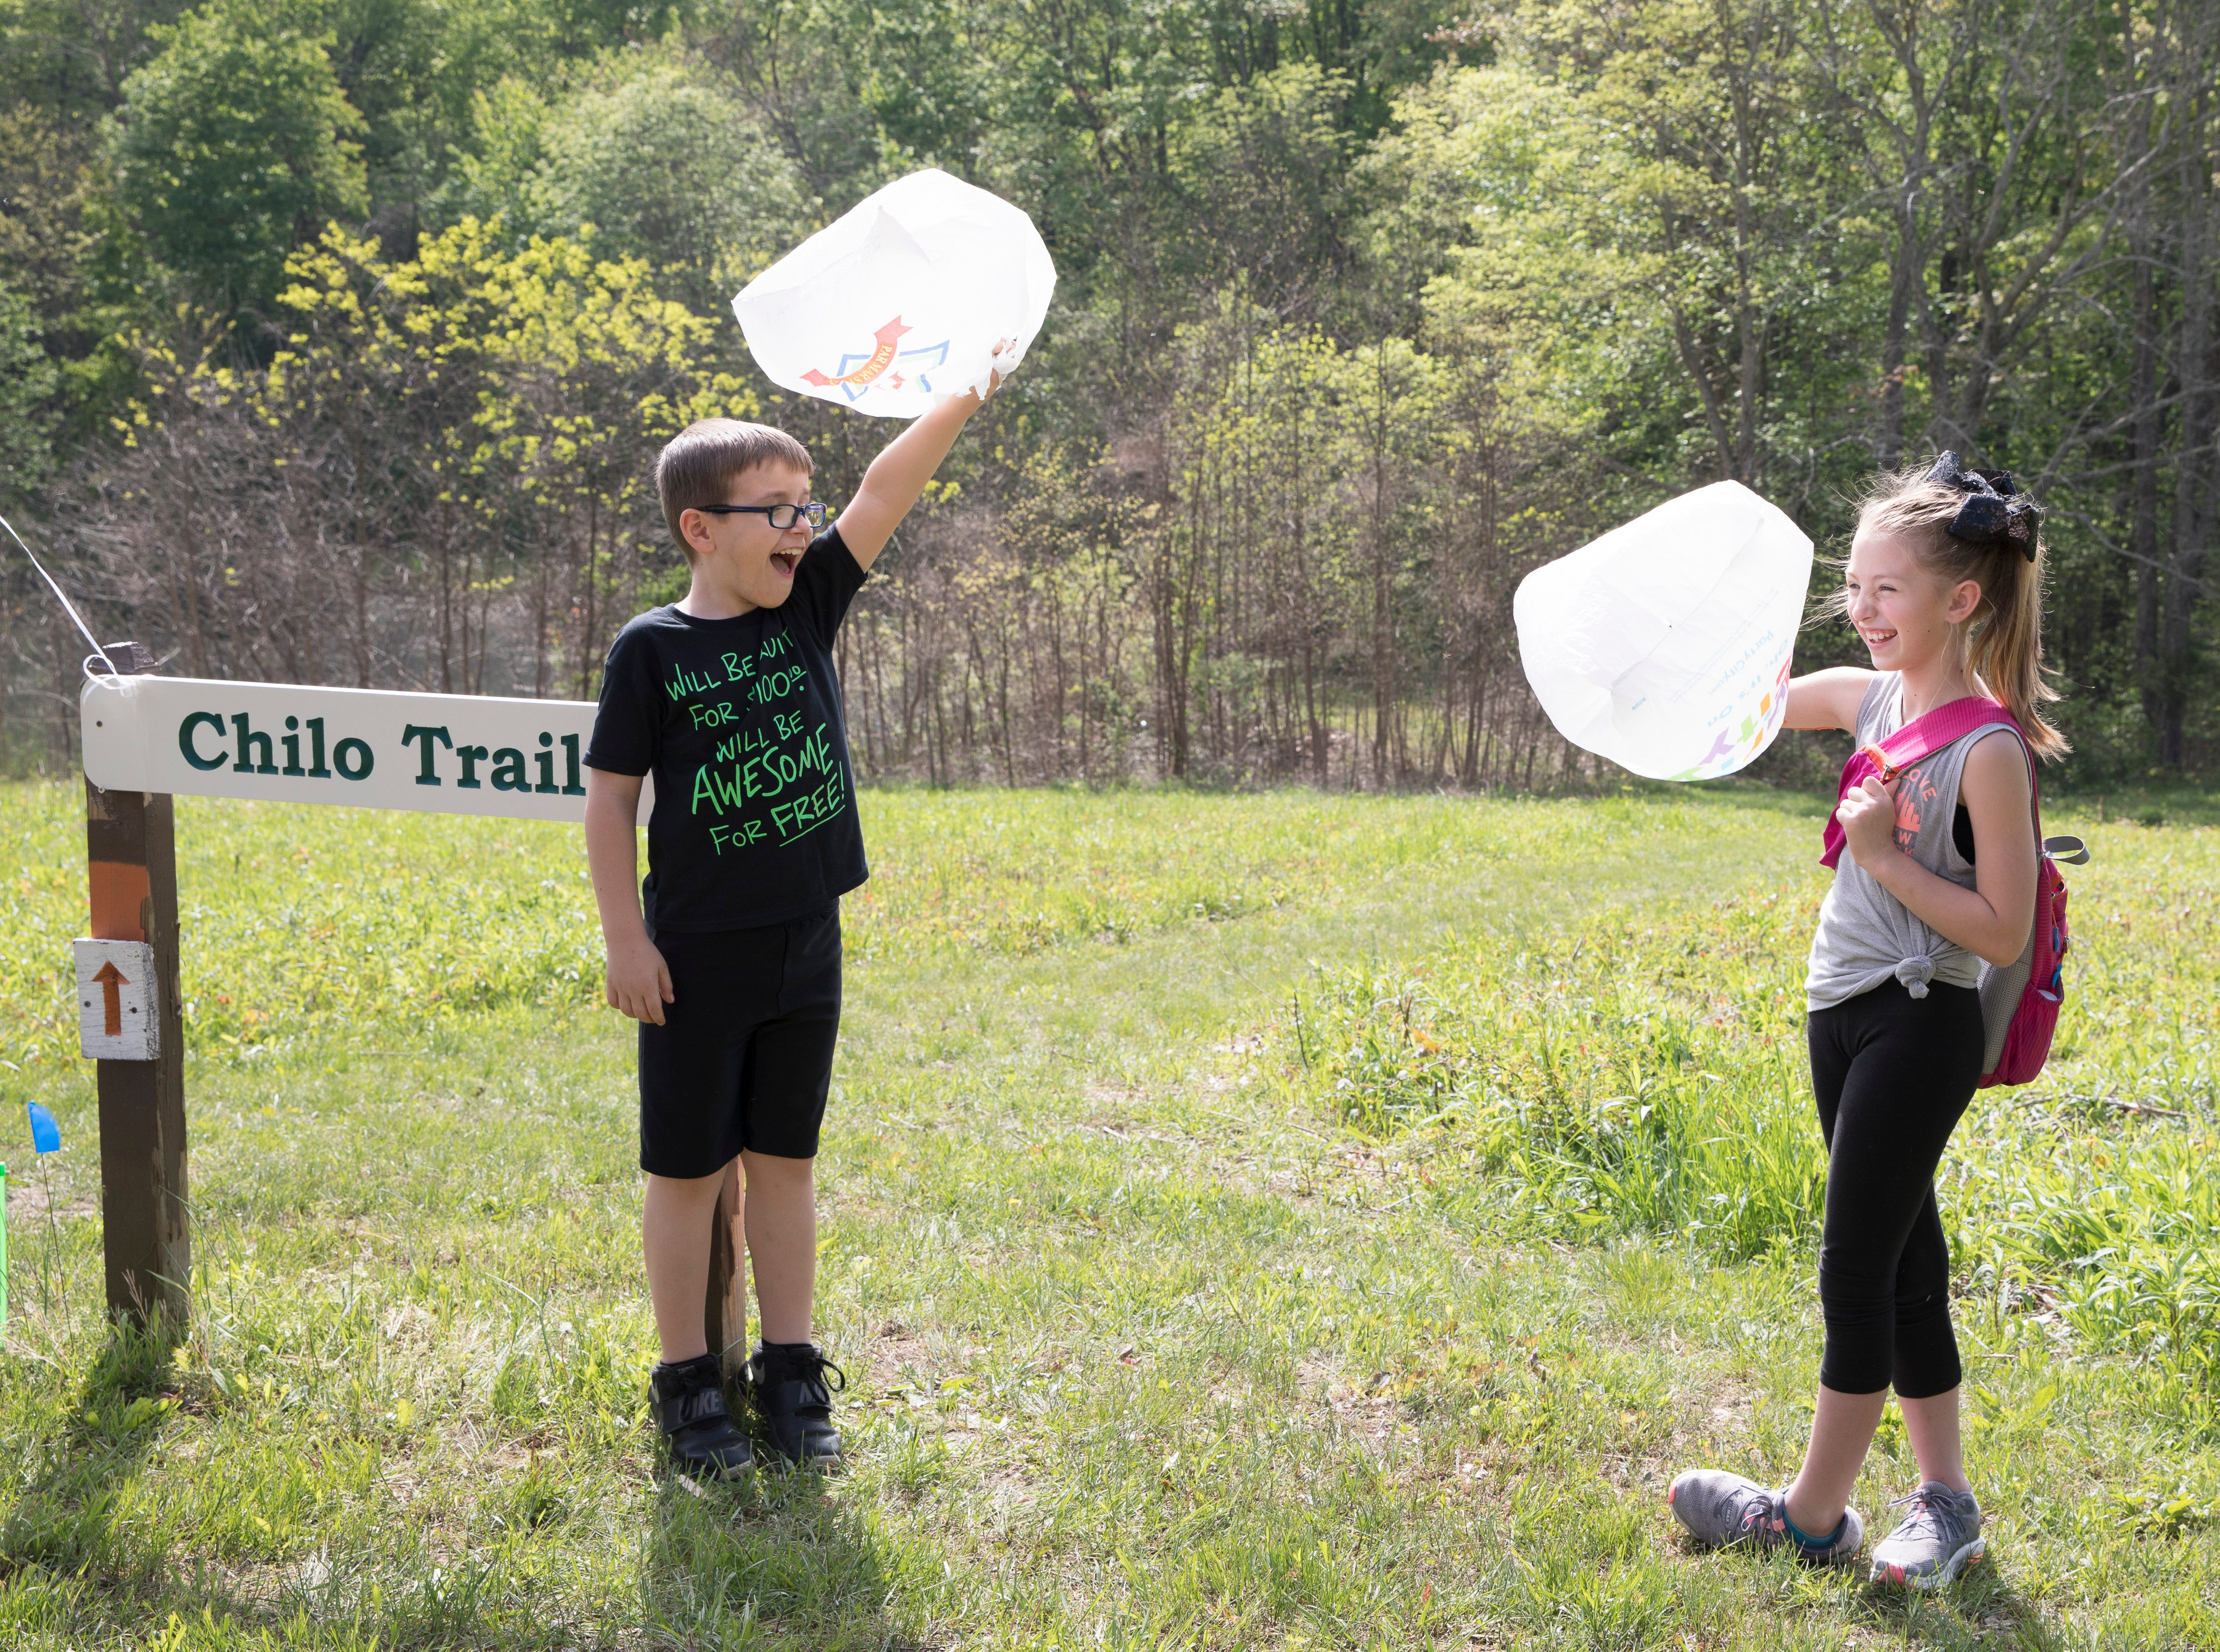 Owen Stotridge, left, and Makenna Fox hold up plastic bags as the strong wind makes them move violently during an interactive project at Buzzards Roost Nature Preserve  involving wind as part of STEM based learning at Chillicothe Primary School on Wednesday, May 1, 2019.